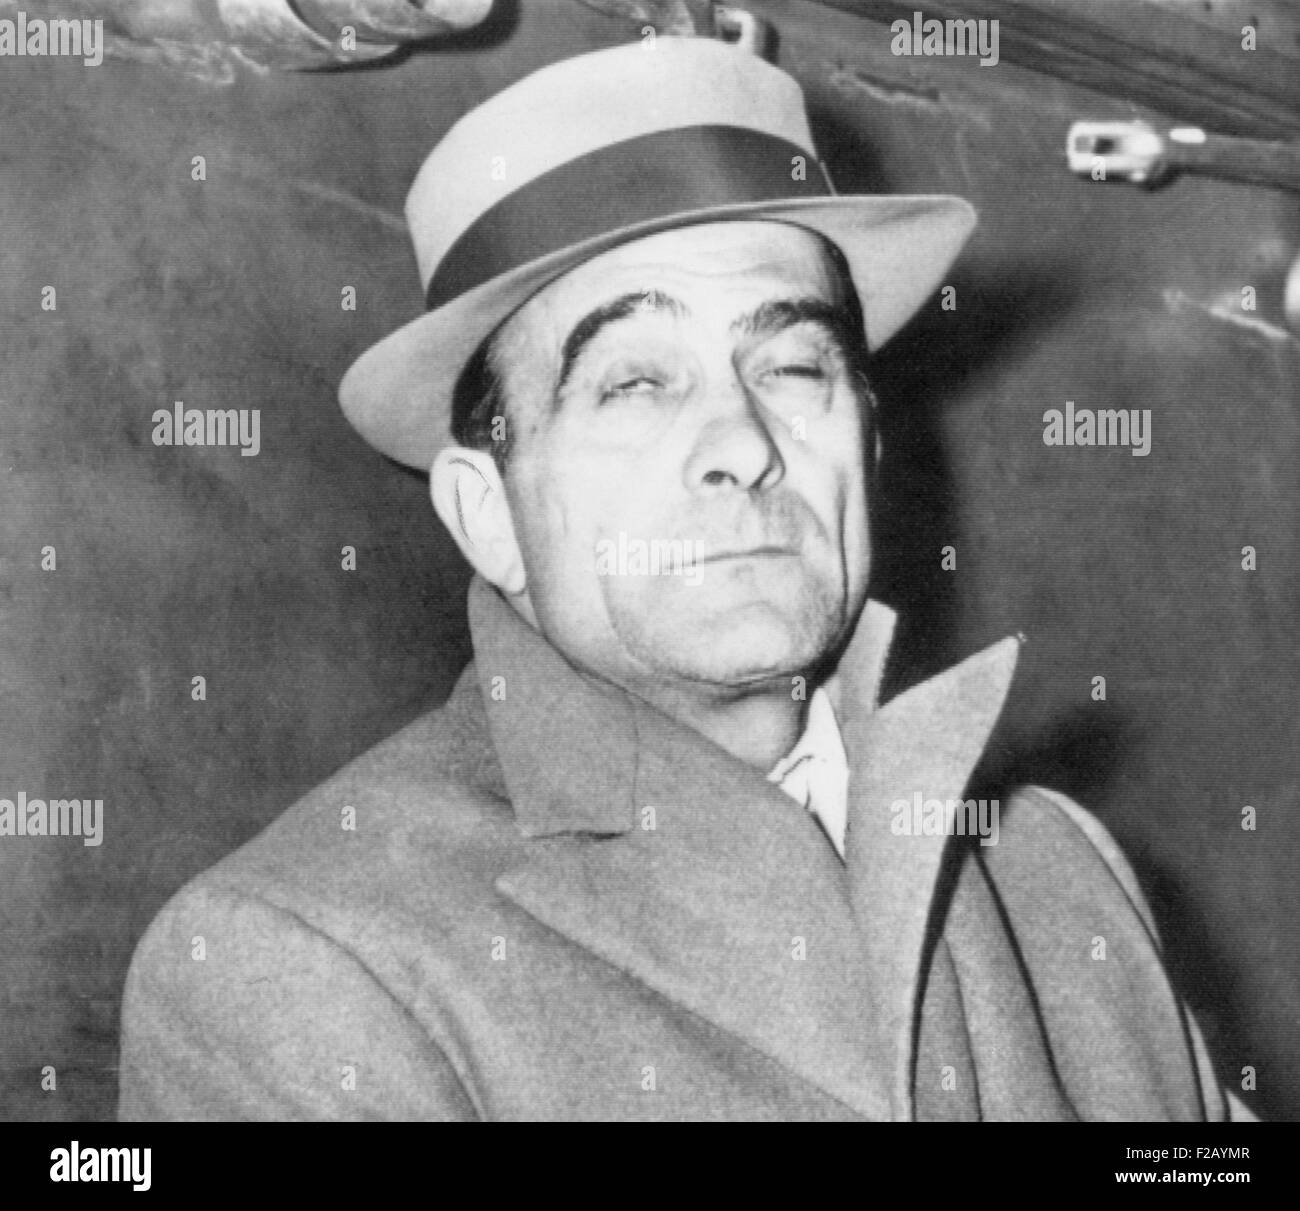 Vito Genovese, American gangster, June 2, 1945, after arriving in New York by ship from Italy. Military police arrested - Stock Image